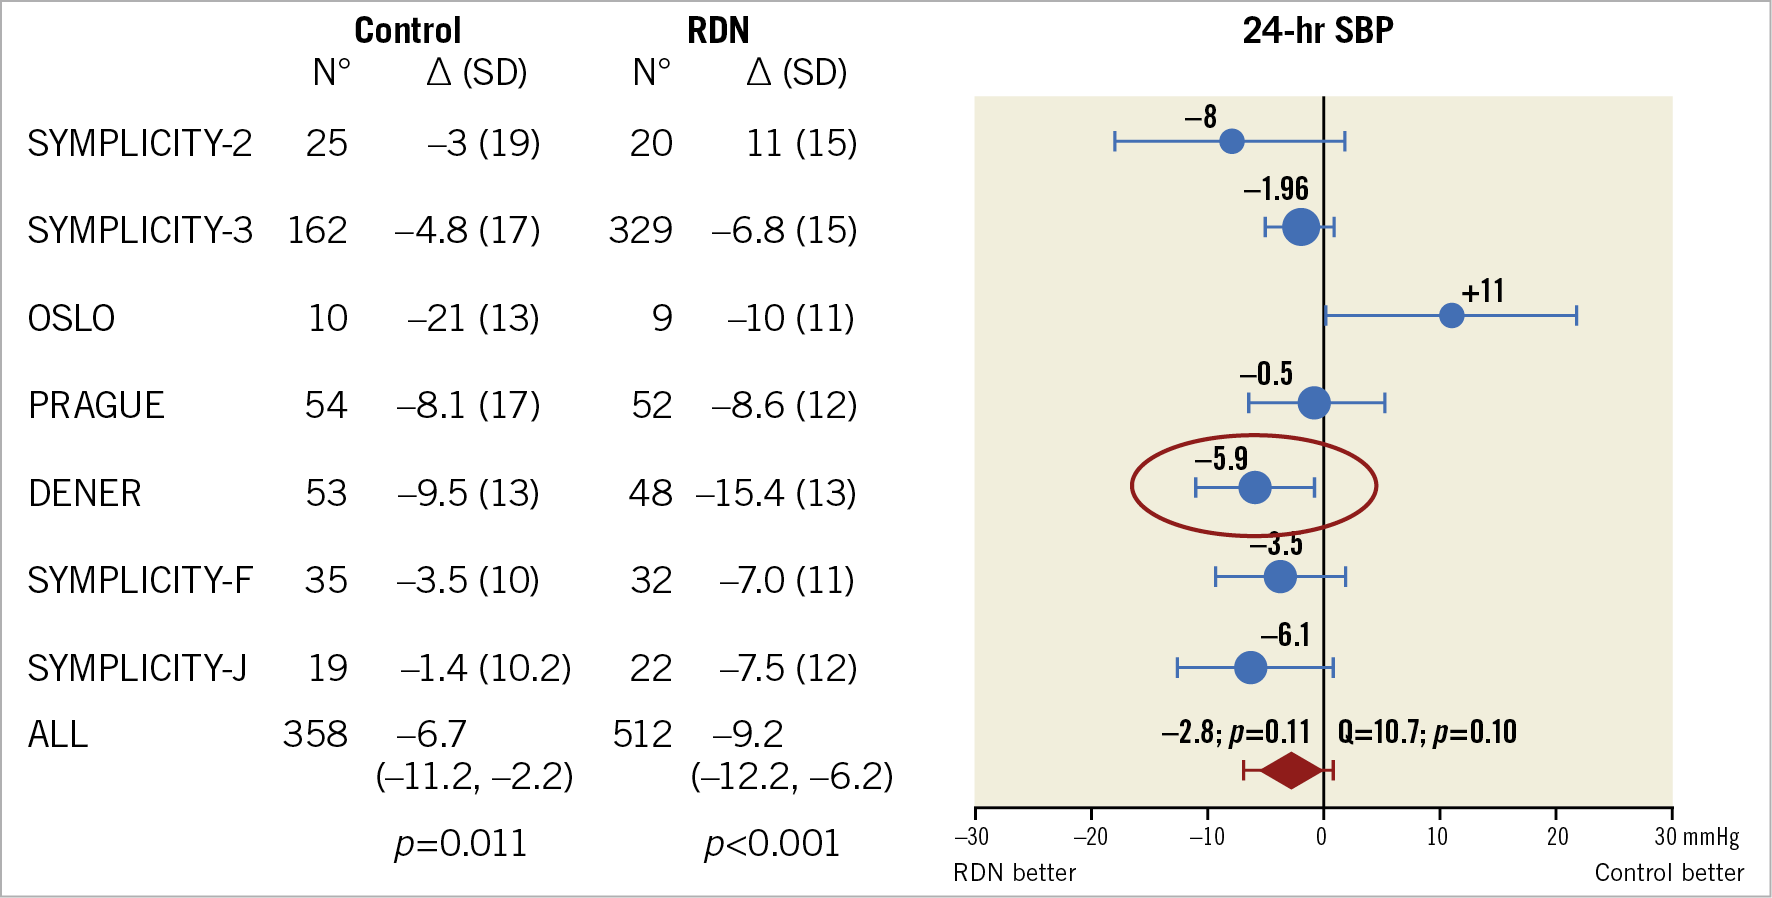 Figure 5. Meta-analysis of randomised controlled trials of renal denervation in treatment-resistant hypertension showing 24-hr systolic blood pressure.